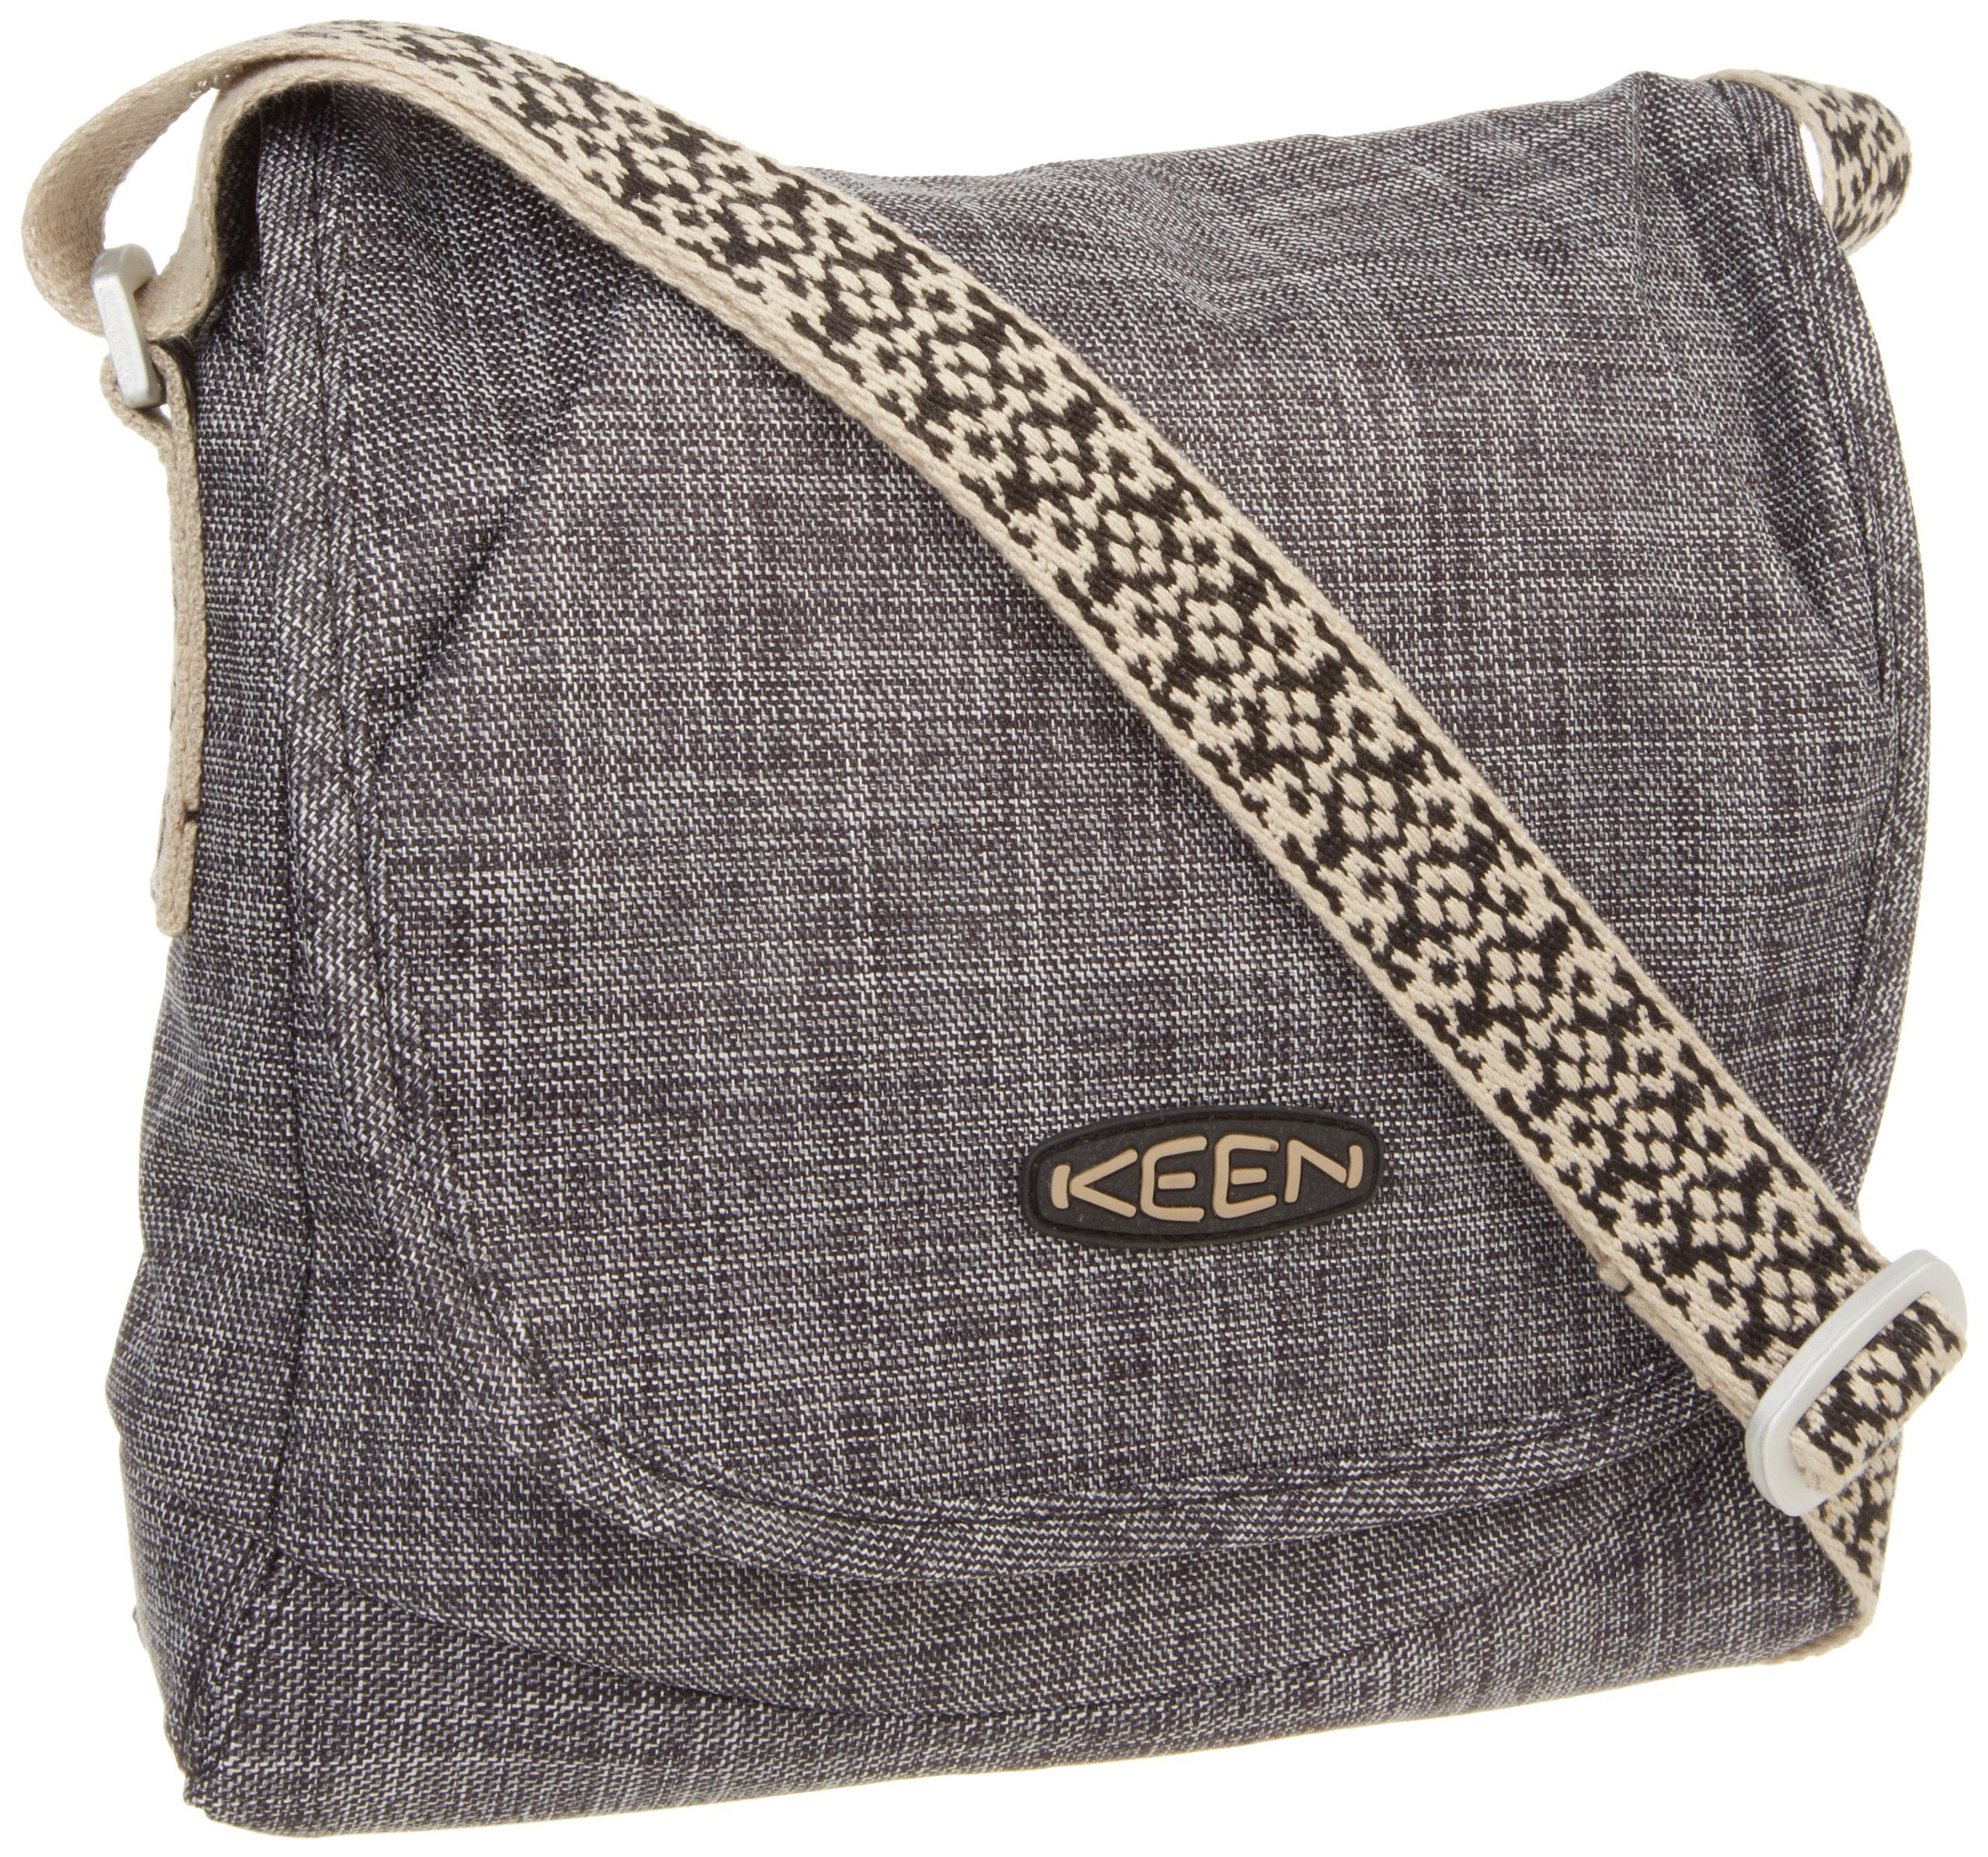 Keen Emerson Cross Hatch Messenger Bag Black One Size